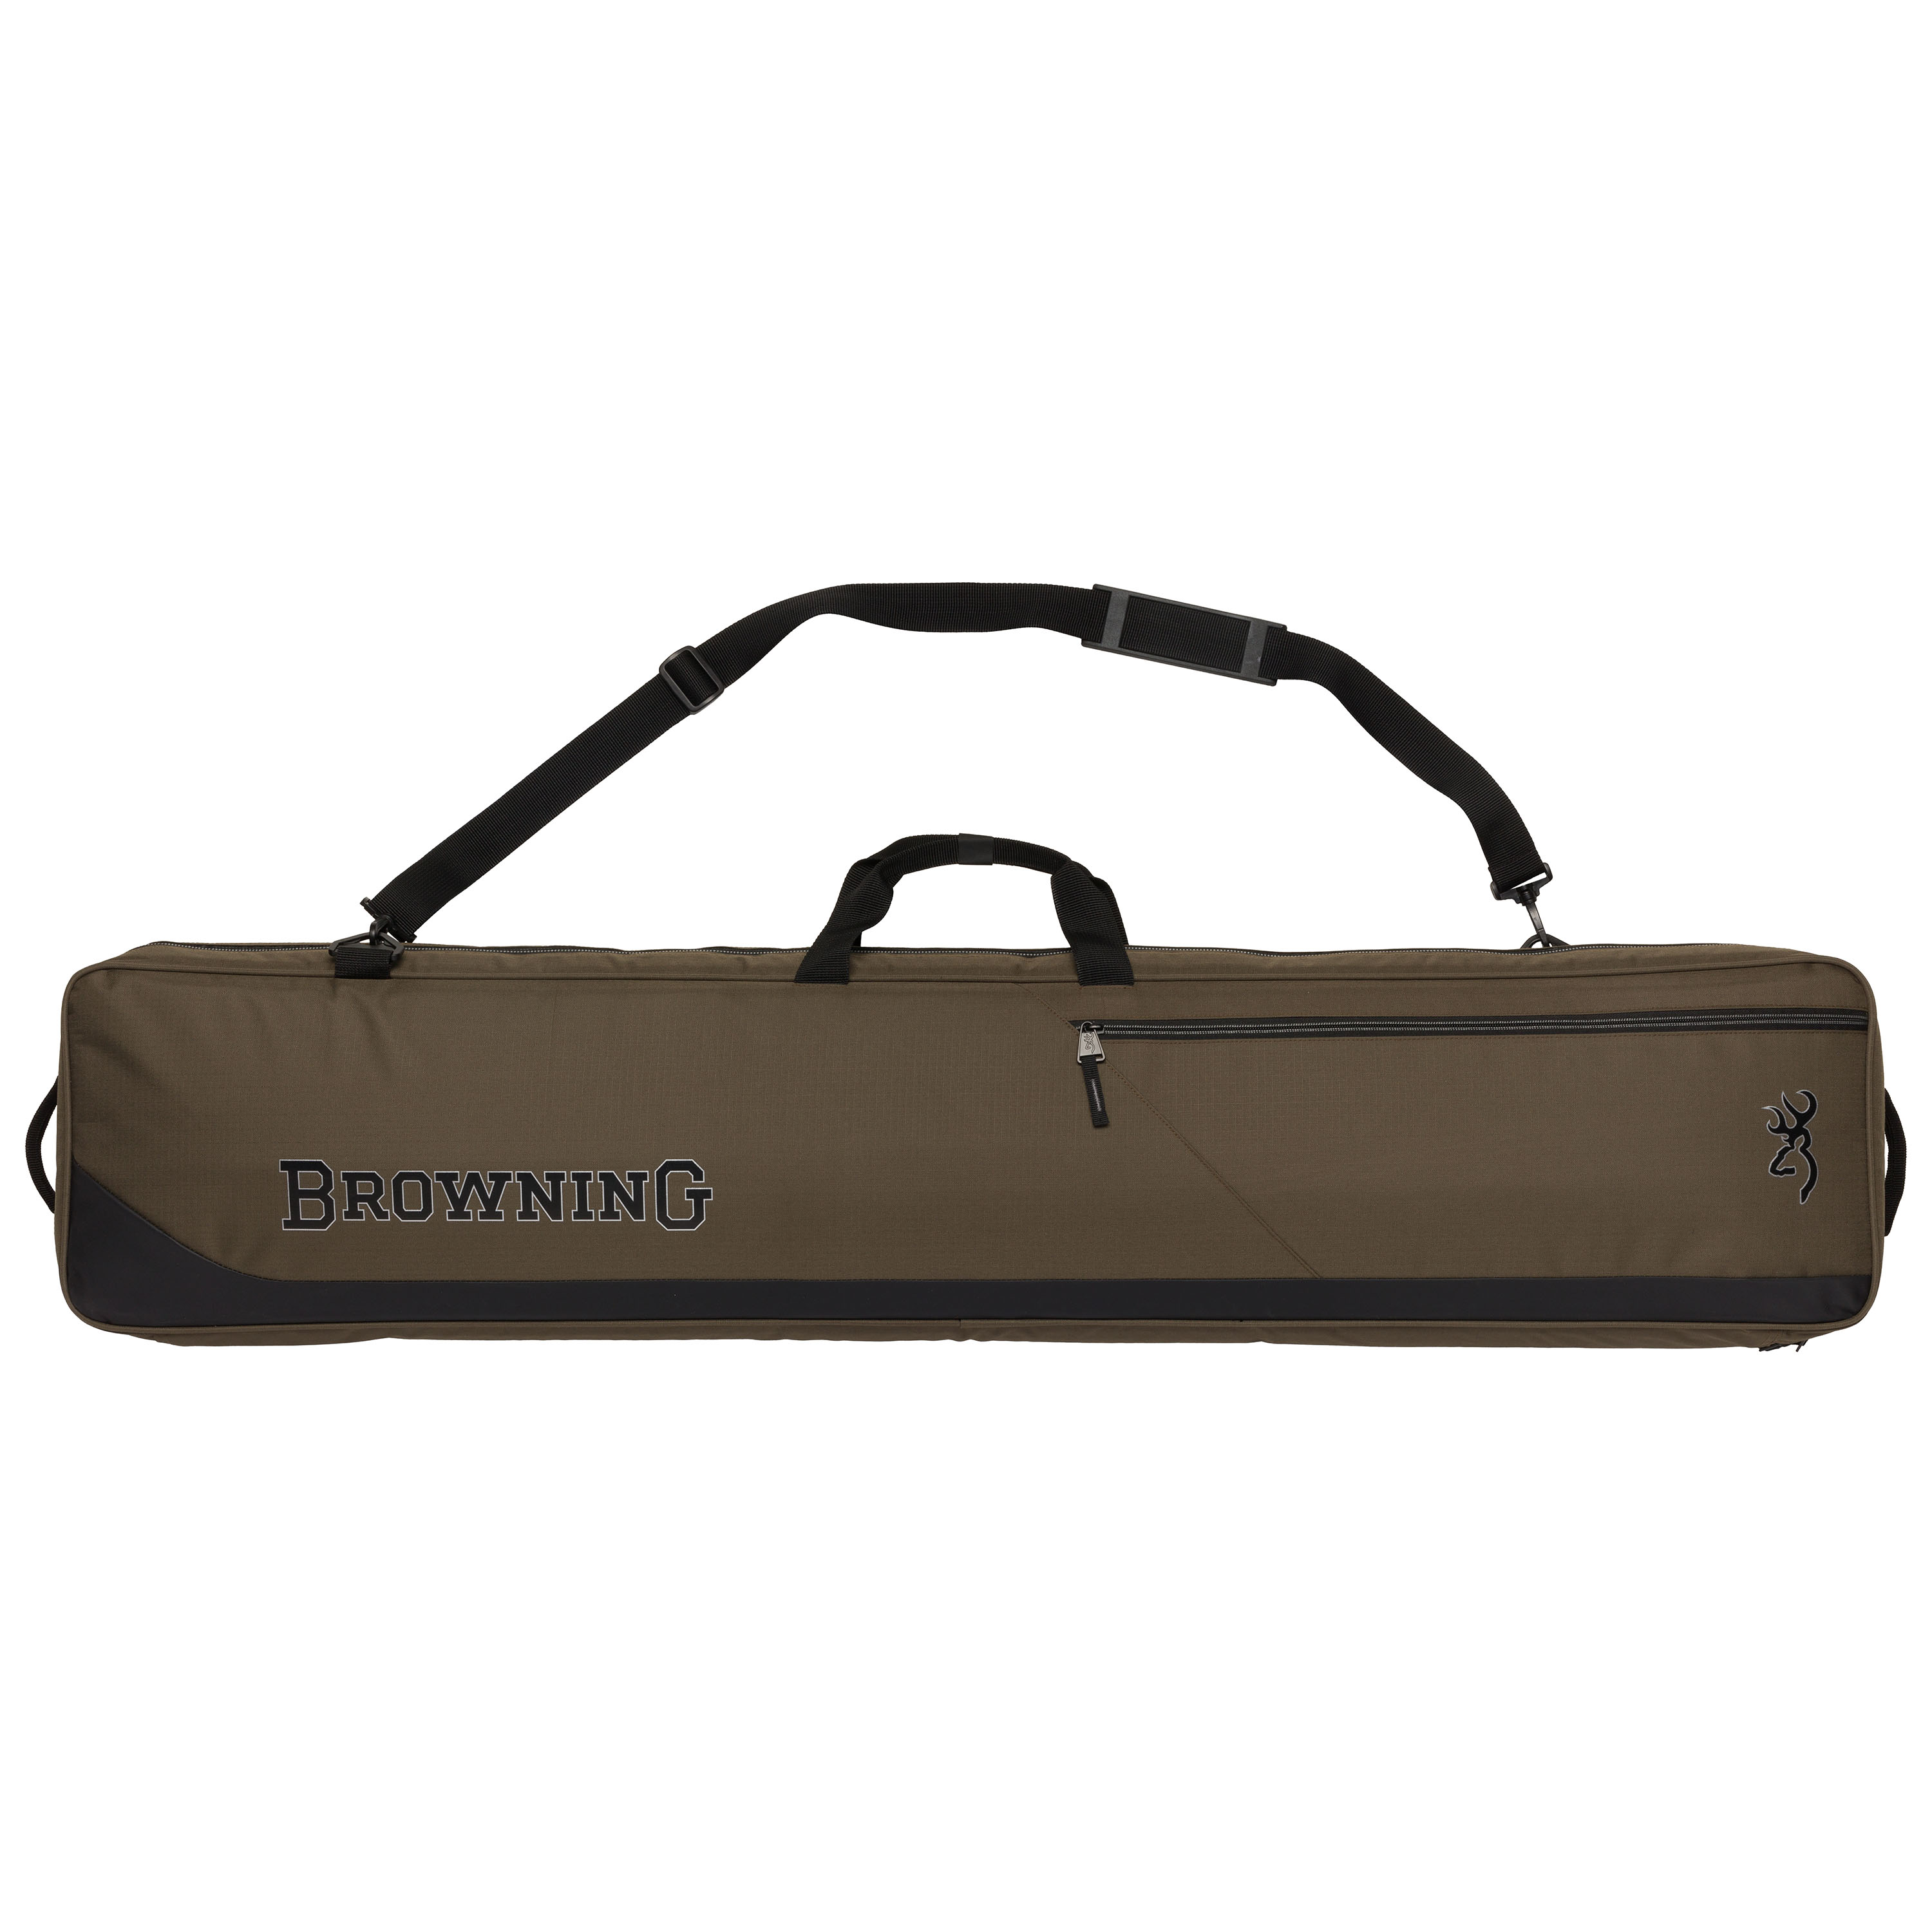 "Browning Marksman Flex Case, 50"" Olive by Browning"